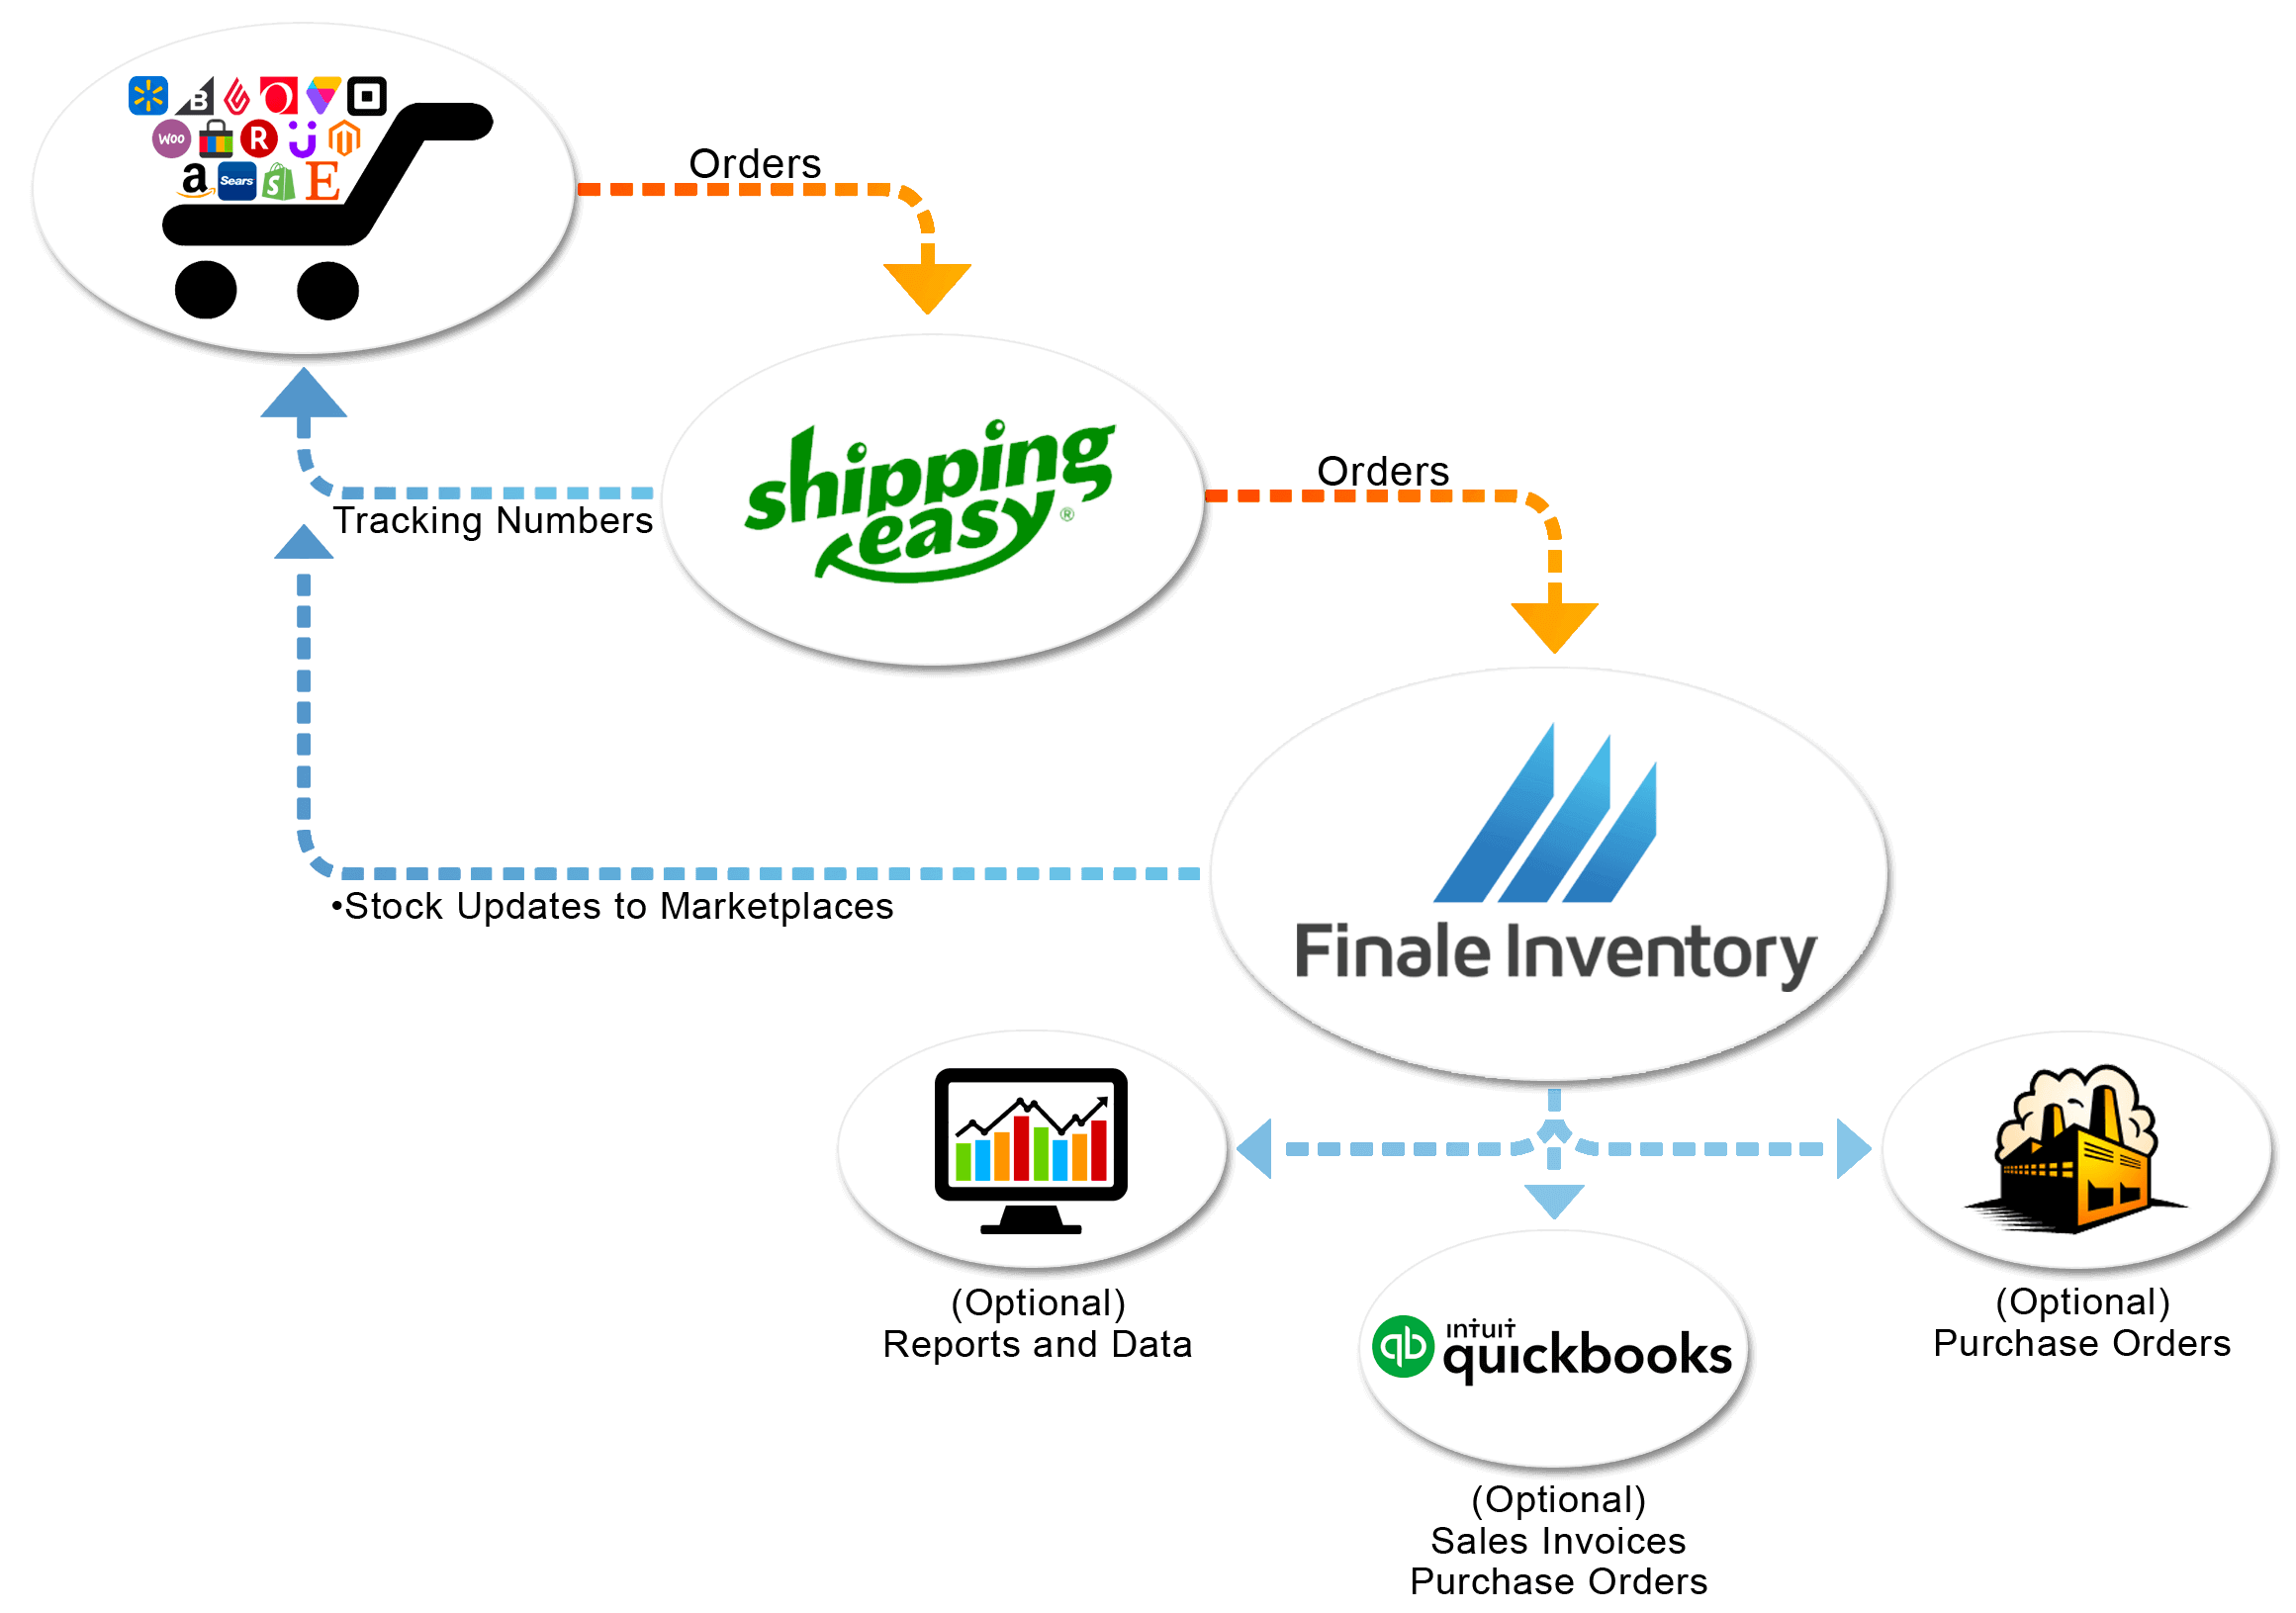 ShippingEasy inventory management, ShippingEasy Inventory Management